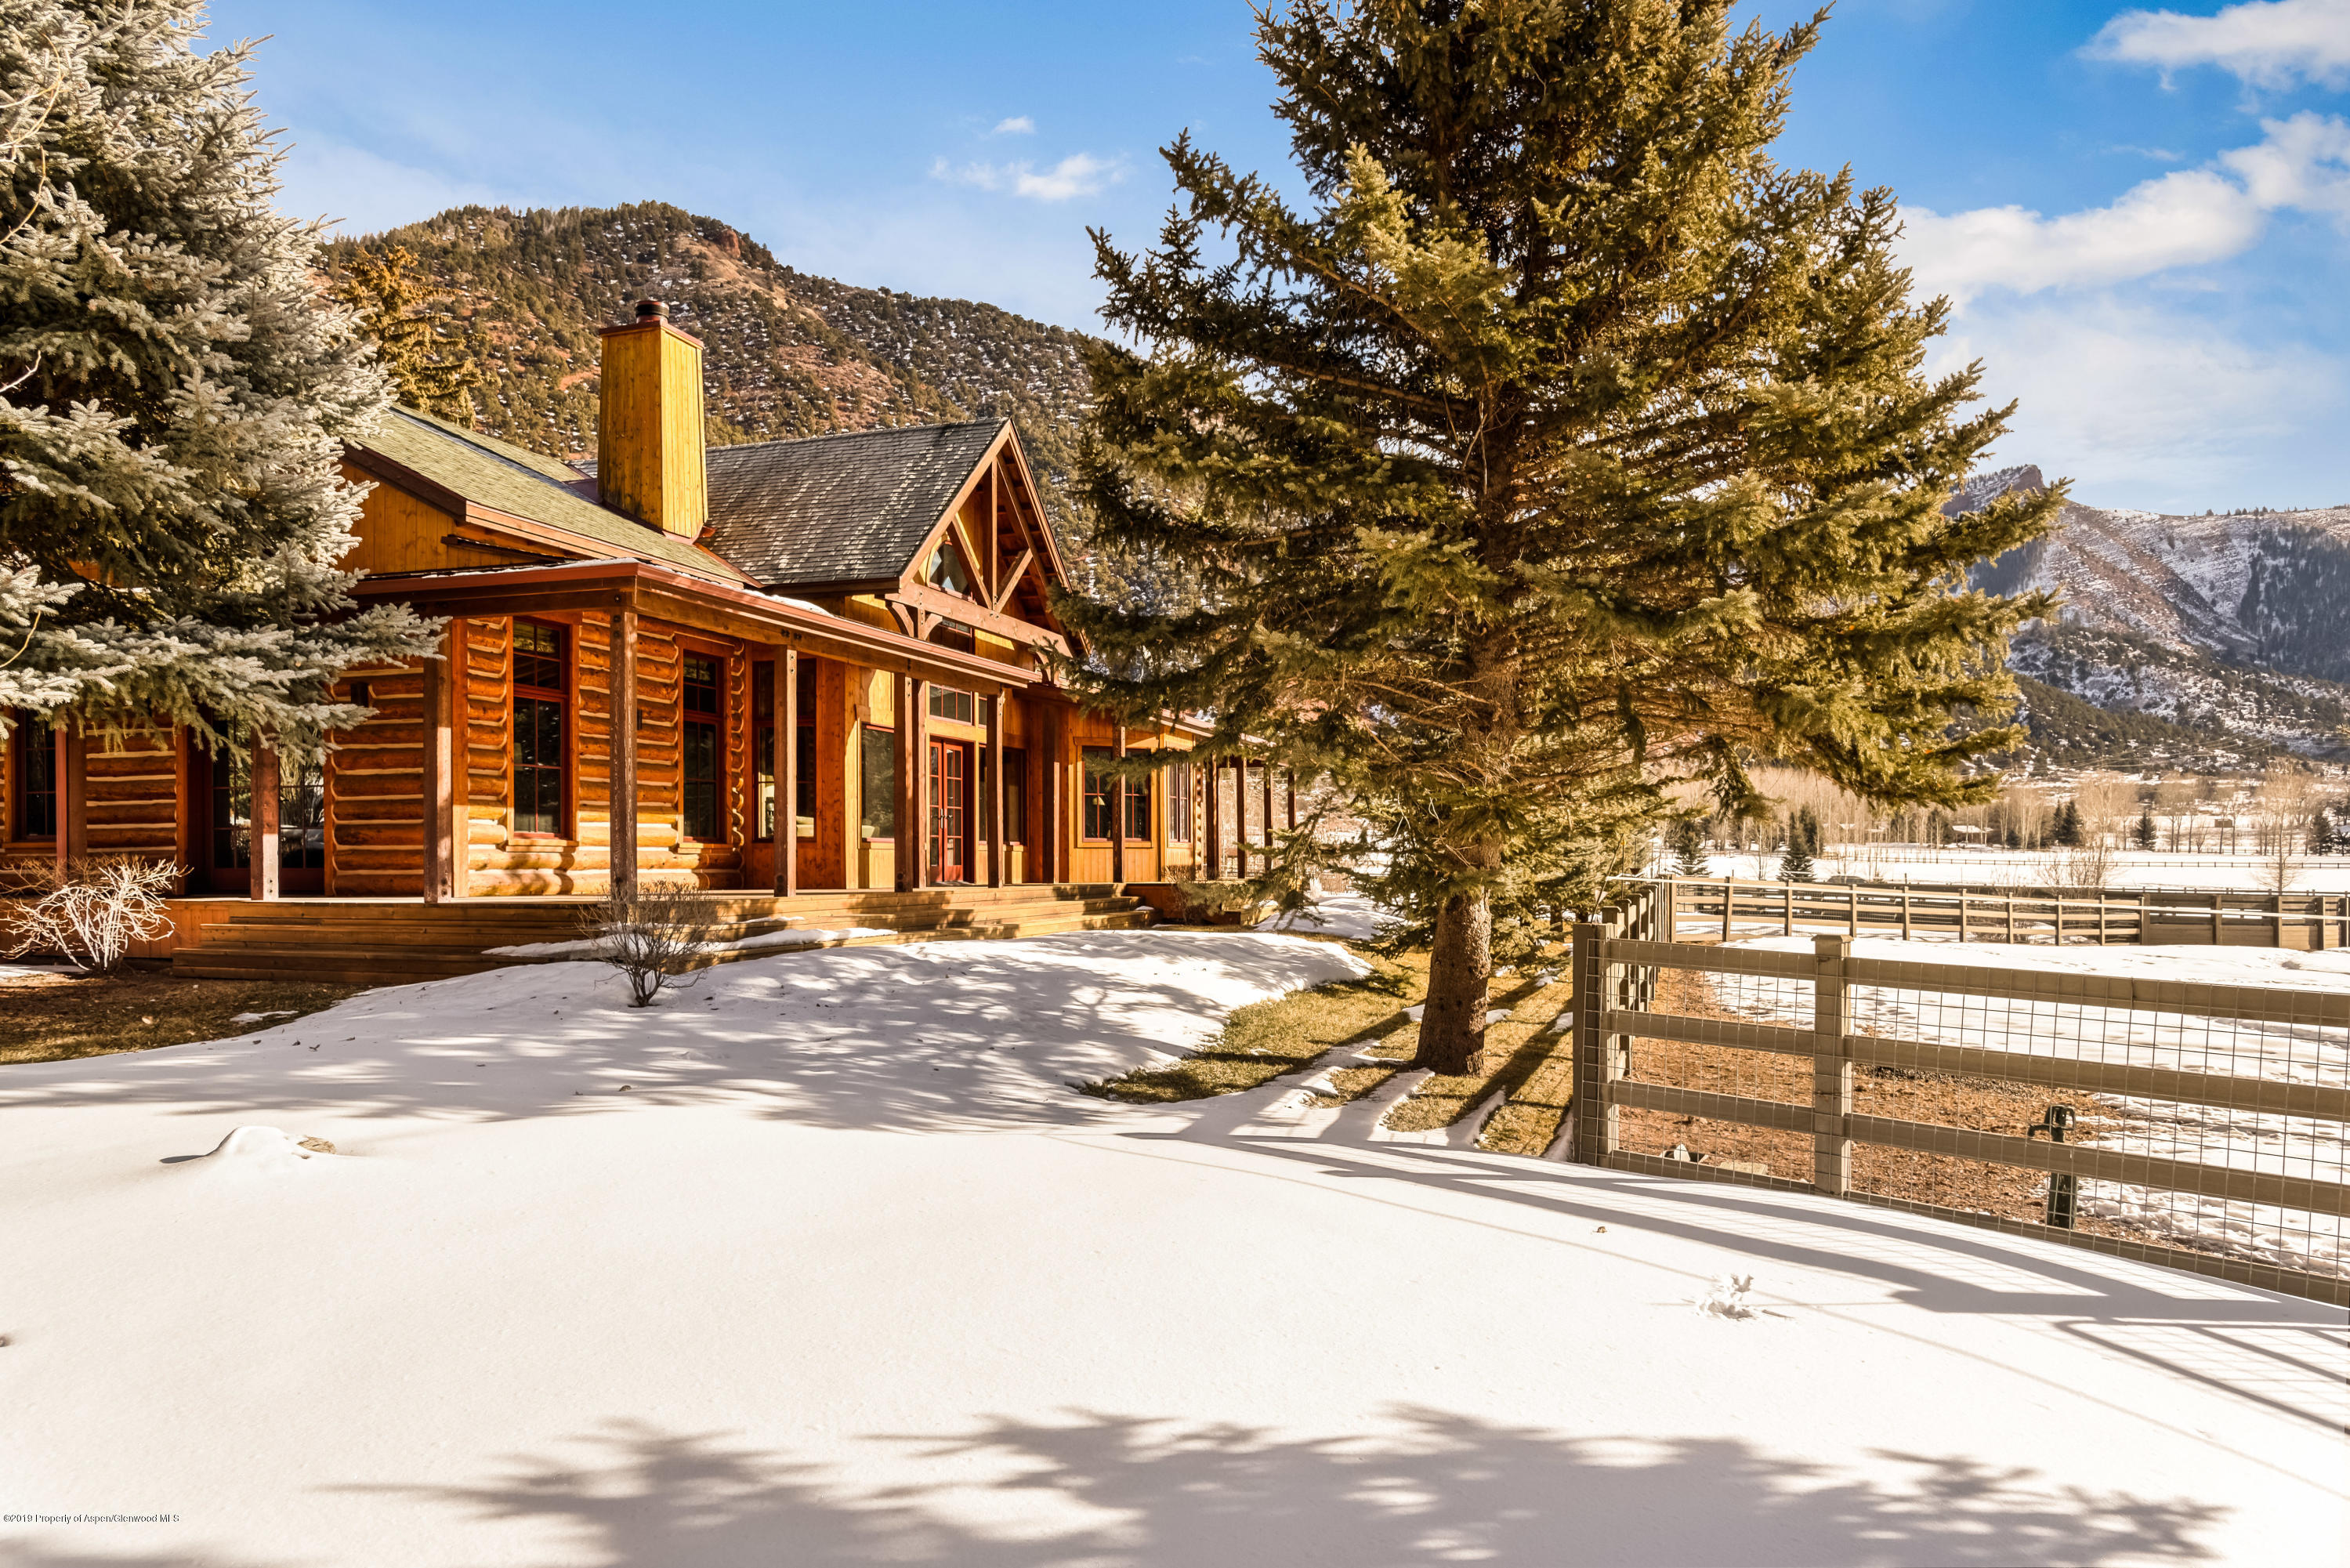 MLS# 135595 - 5 - 50 E River Ranch Road, Snowmass, CO 81654